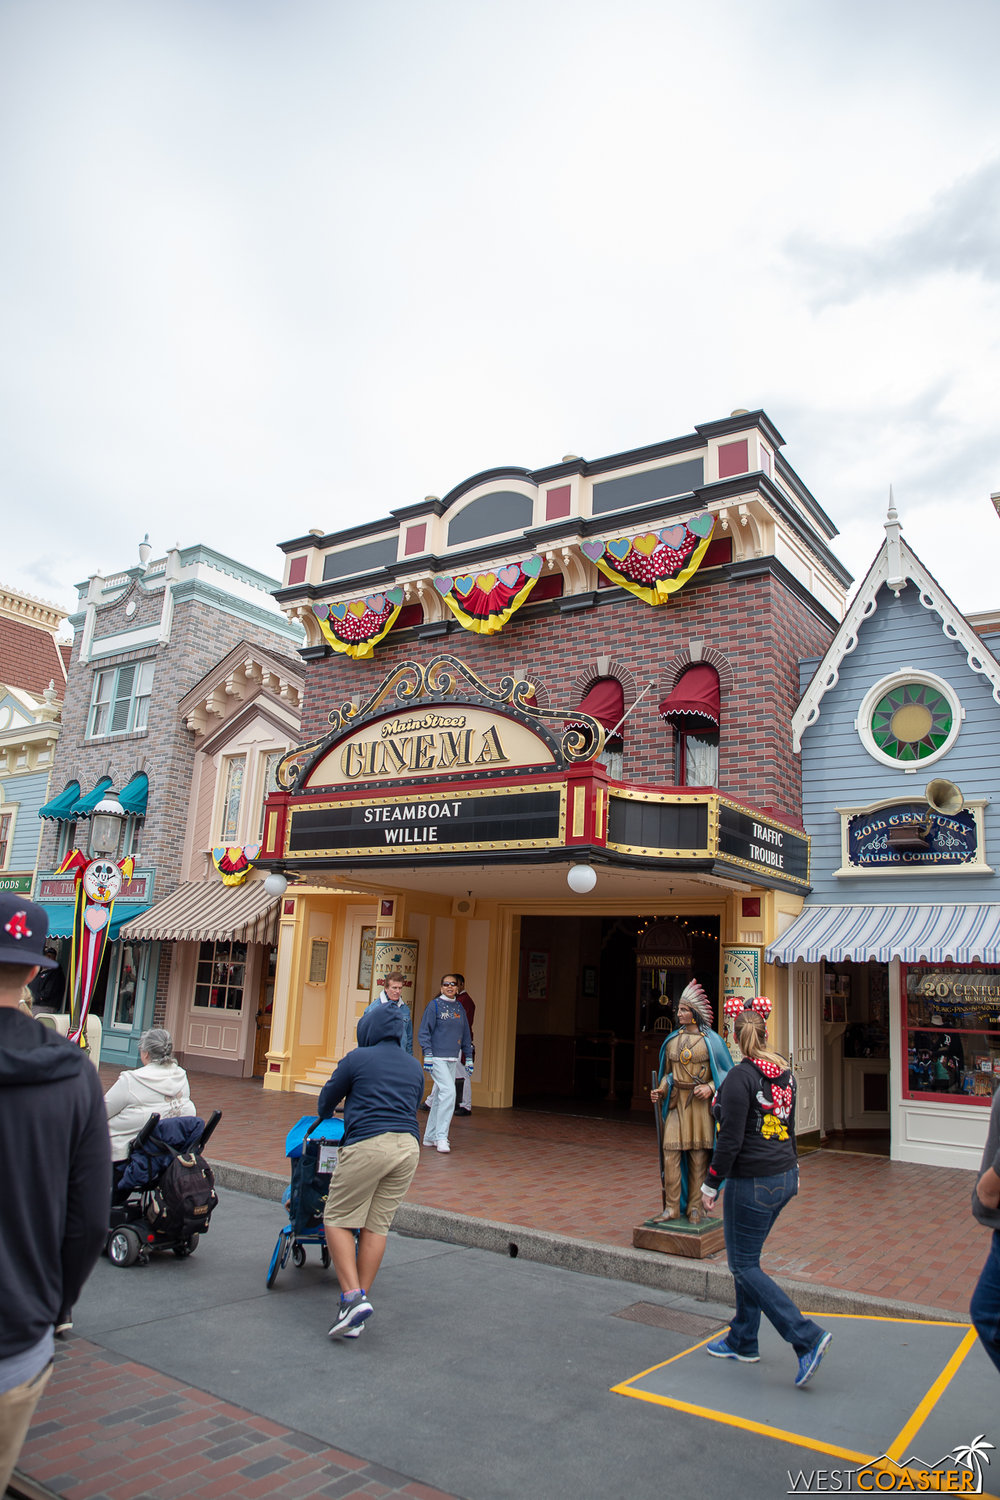 It's been noted before elsewhere, but we wanted to take time to point this out. The Main Street Cinema got repainted in a subtle, cute, and sort of obvious way.